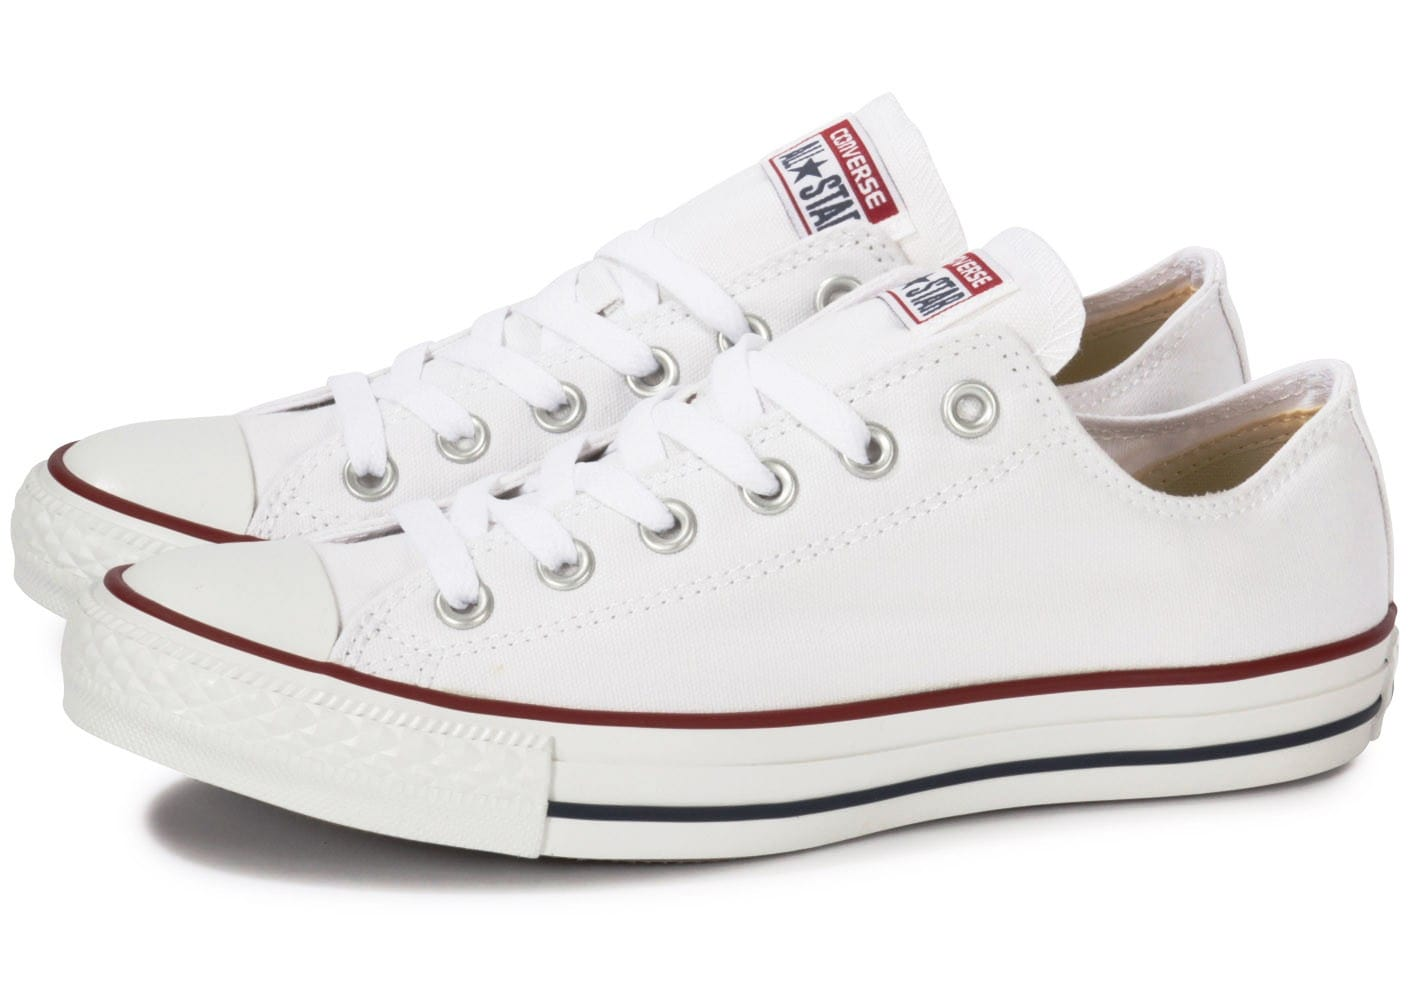 Converse Chuck Taylor All Star Low Blanc - Chaussures Baskets basses Femme